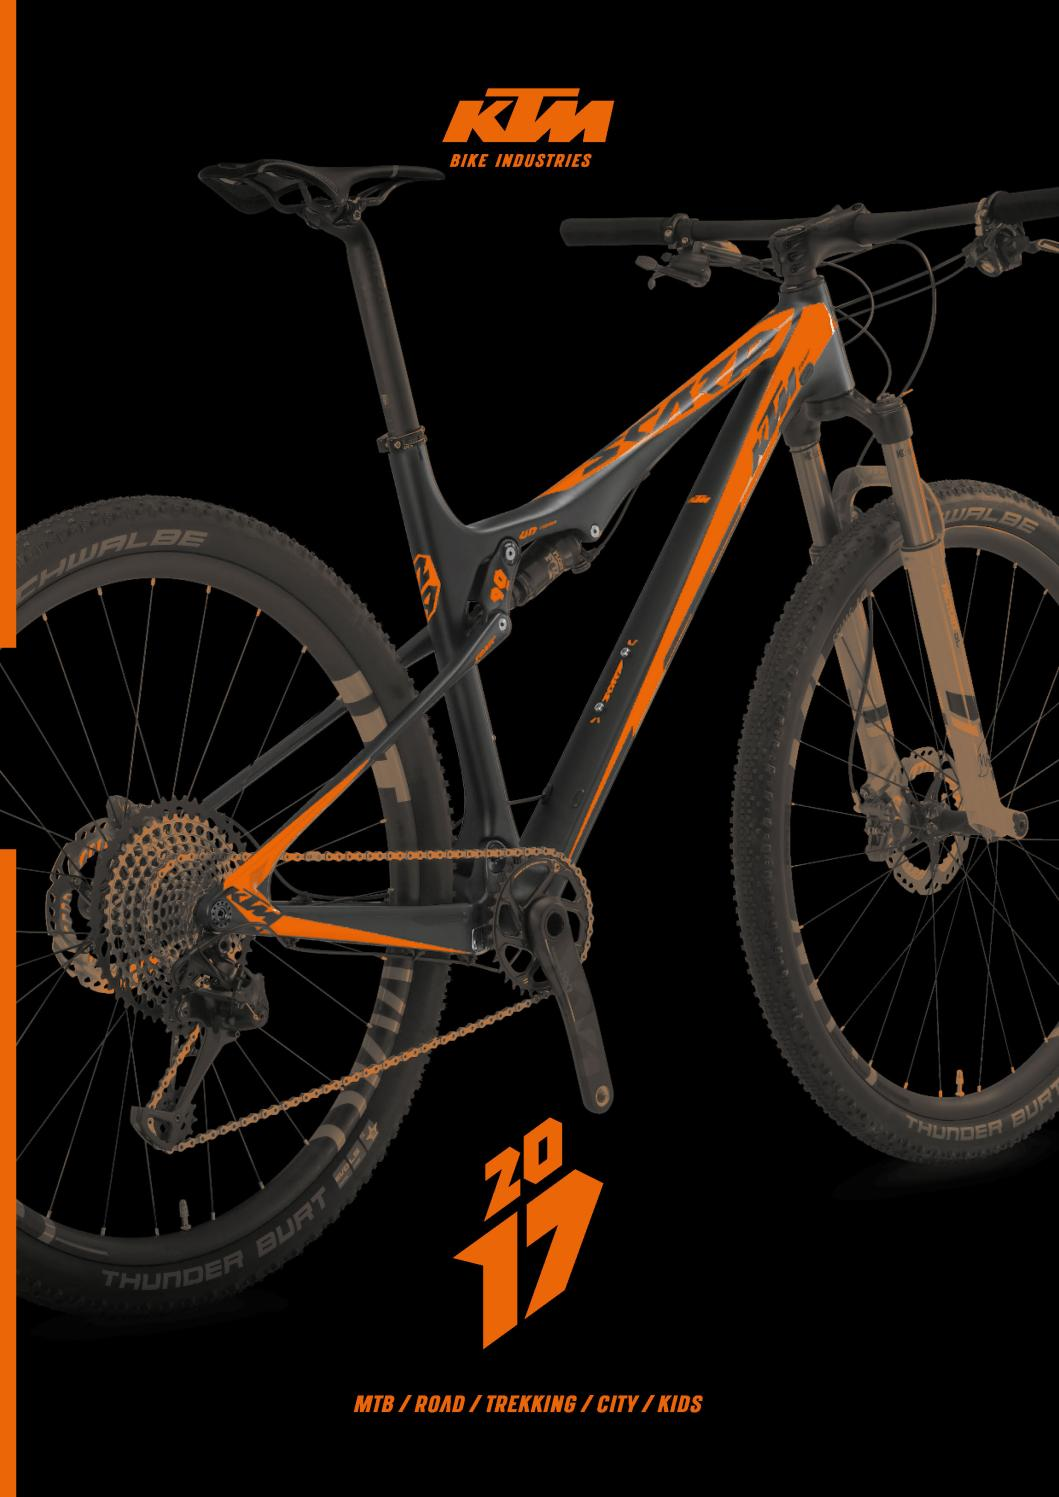 ktm catalogue 2017 by ktm bike industries page 1 issuu. Black Bedroom Furniture Sets. Home Design Ideas